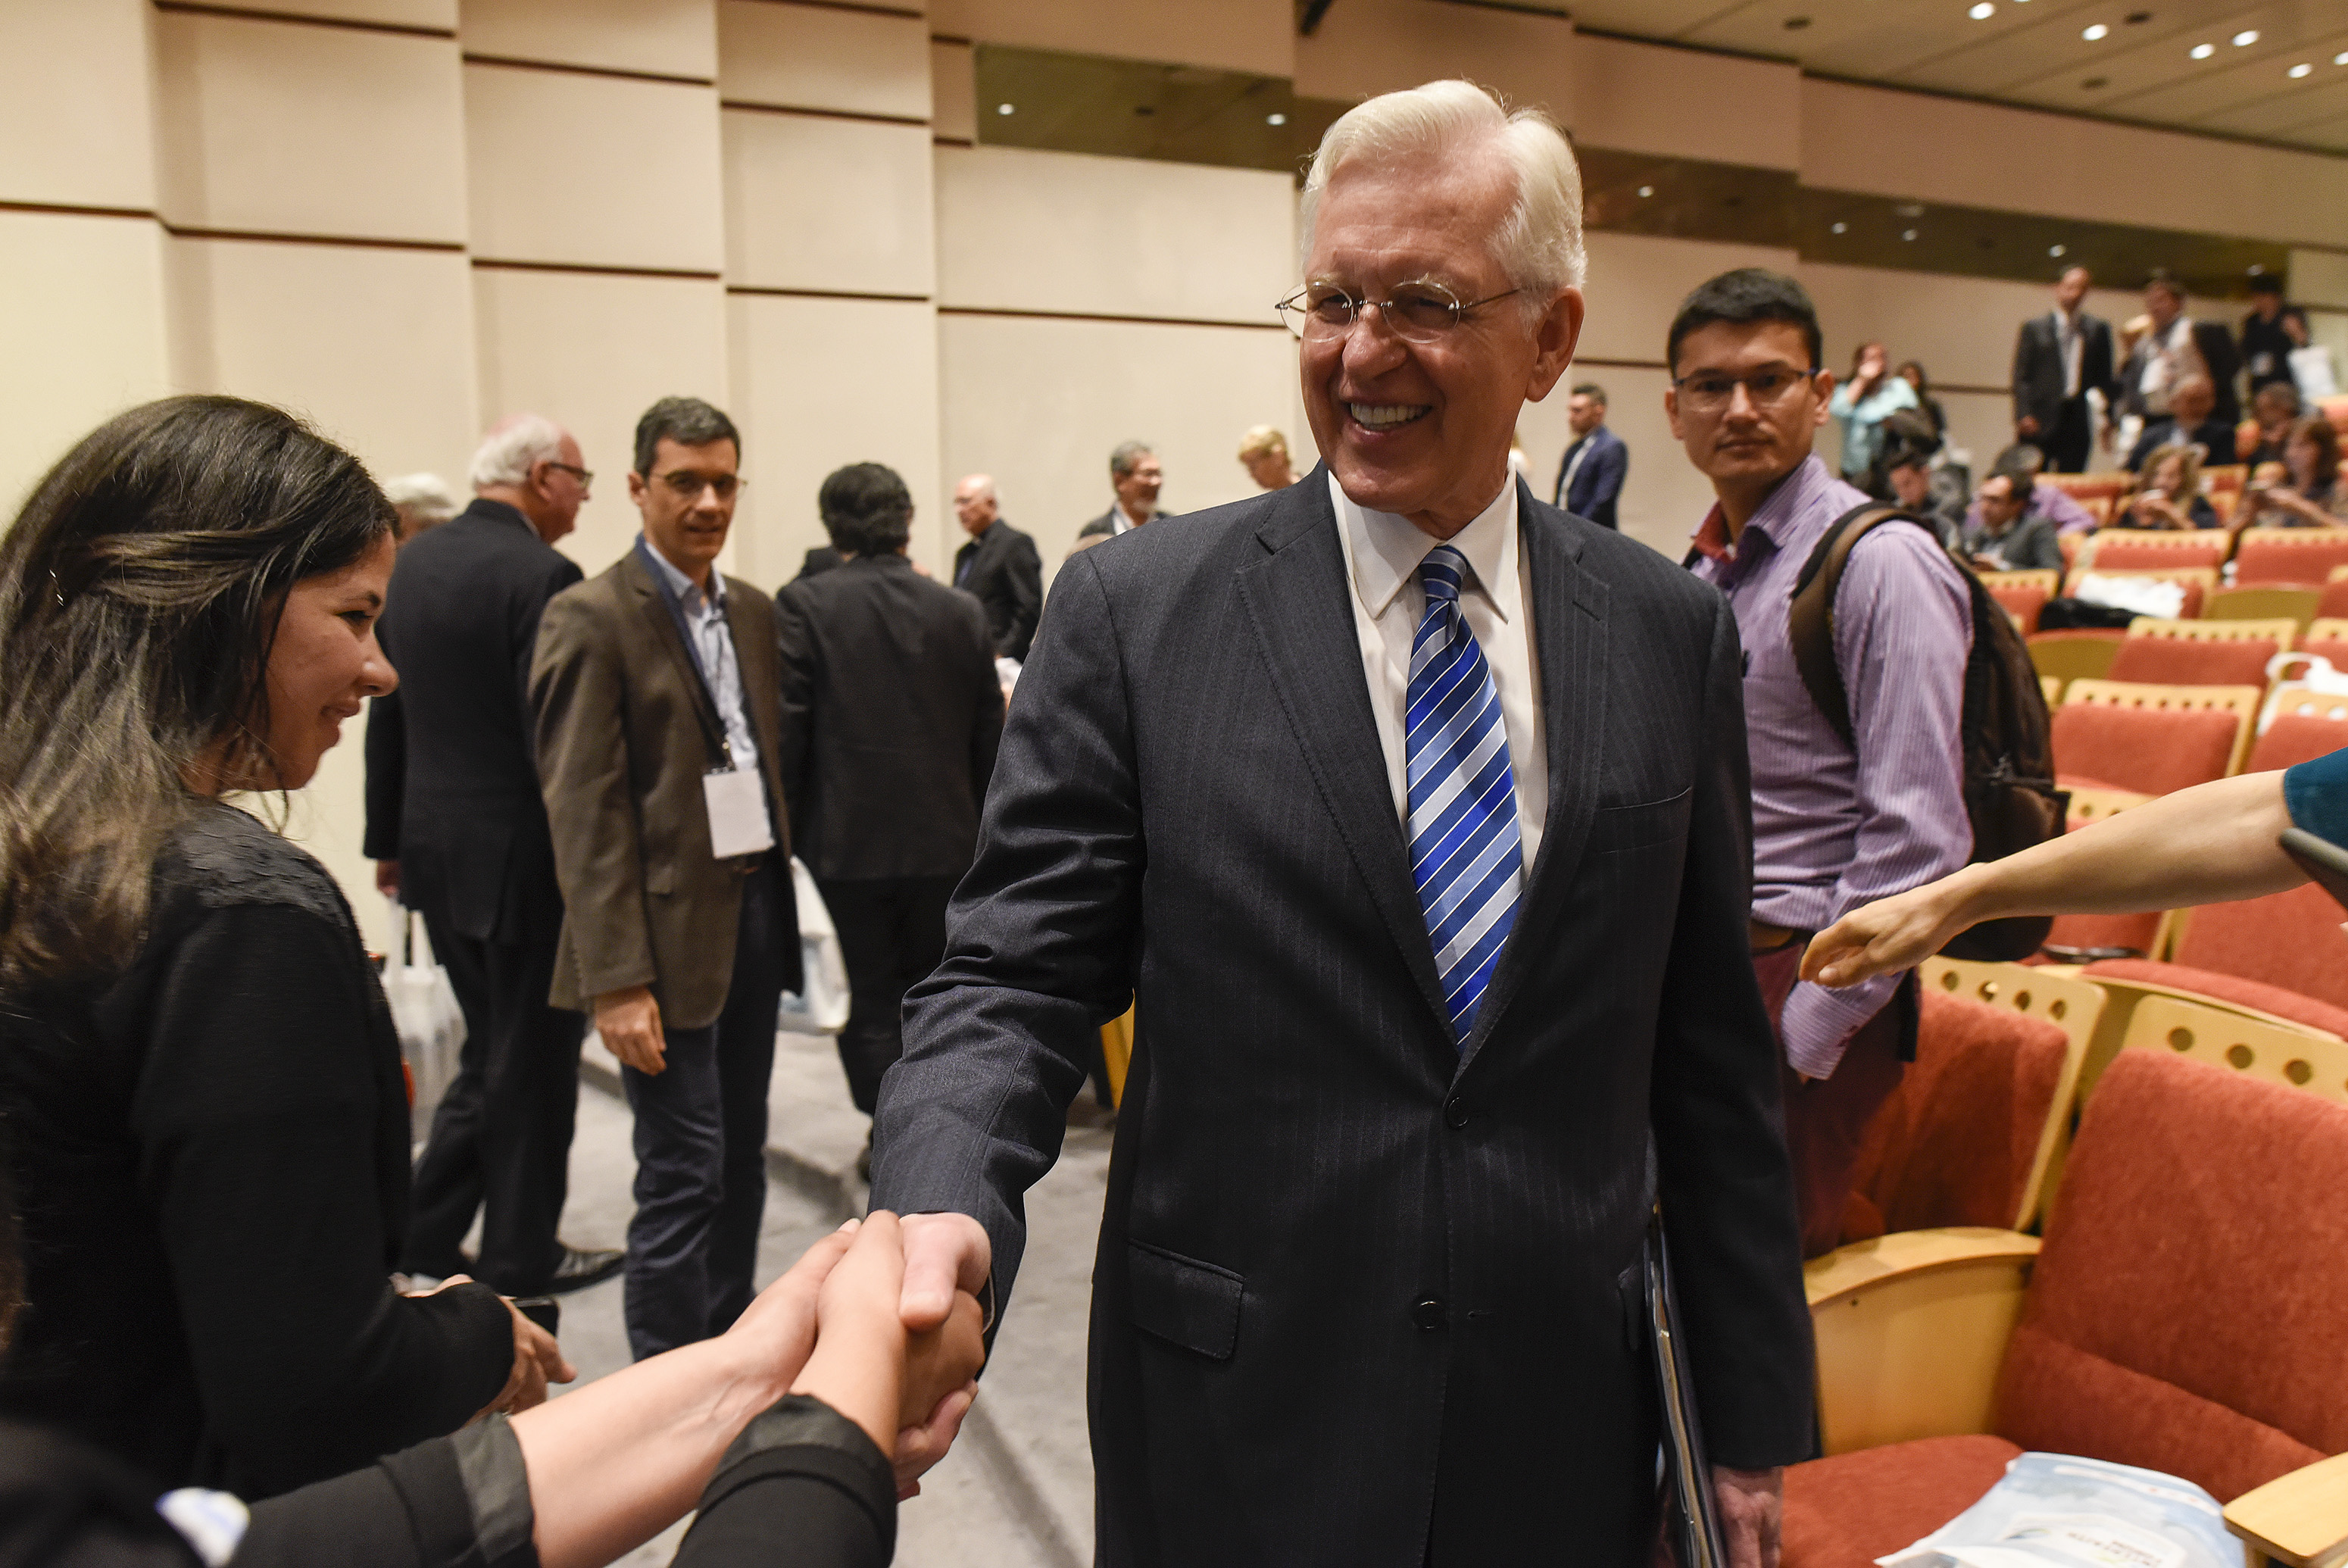 Elder D. Todd Christofferson of the Quorum of the Twelve Apostles greets other attendees during a break at the G20 Interfaith Forum in Buenos Aires, Argentina, on Wednesday, Sept. 26, 2018.